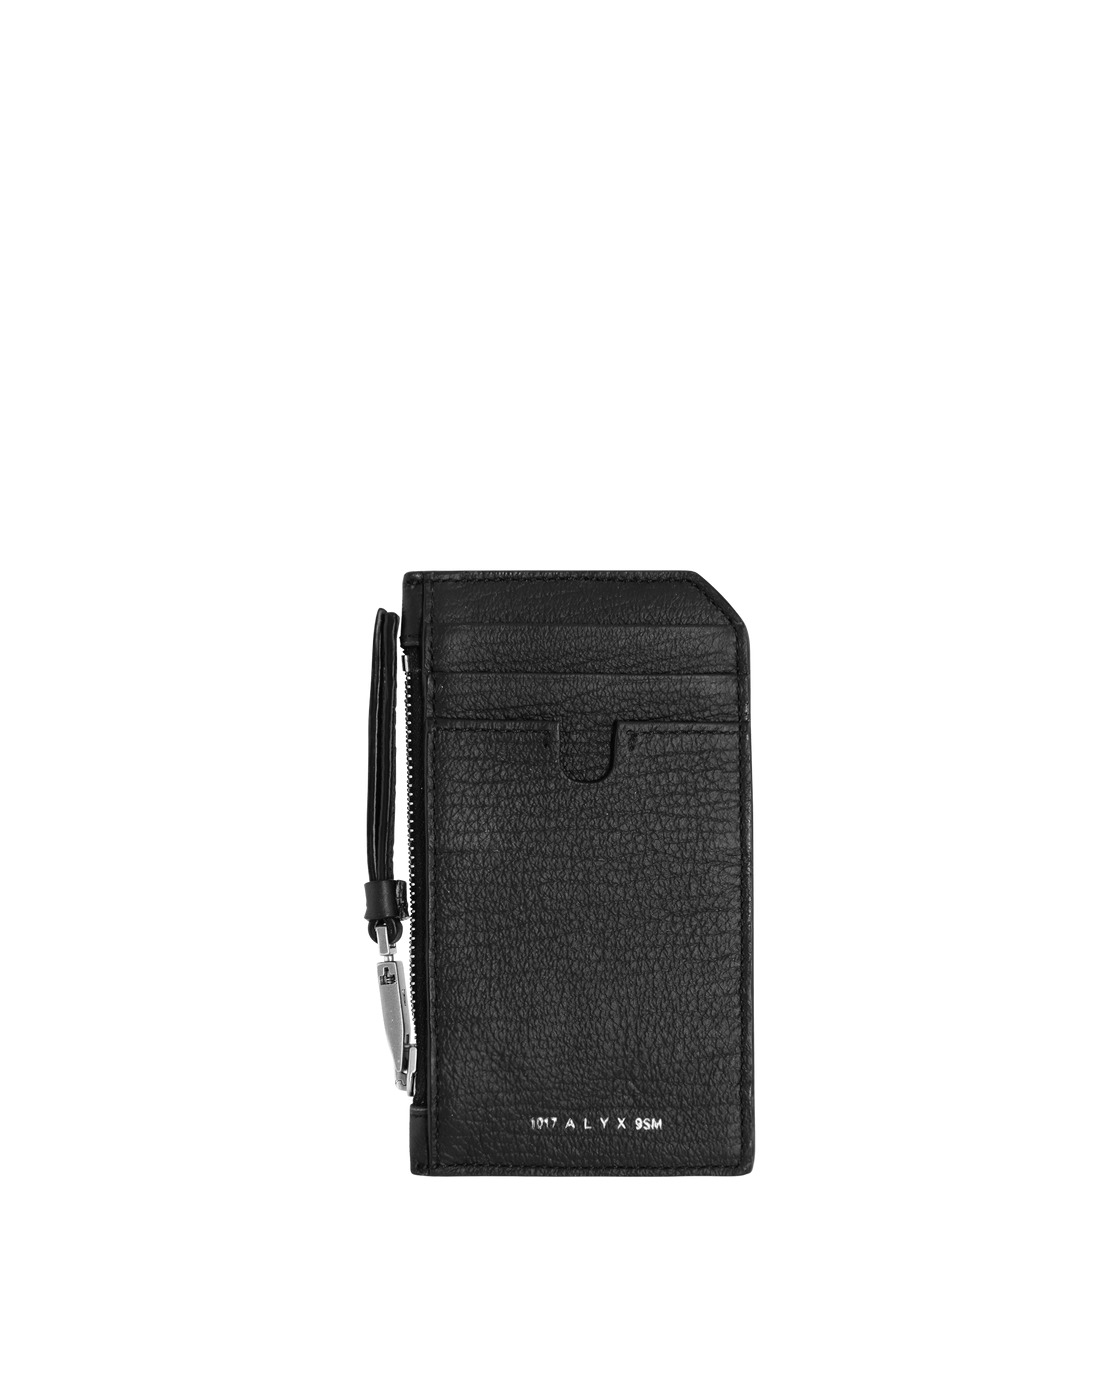 Photo: 1017 Alyx 9sm Dani Cardholder Black